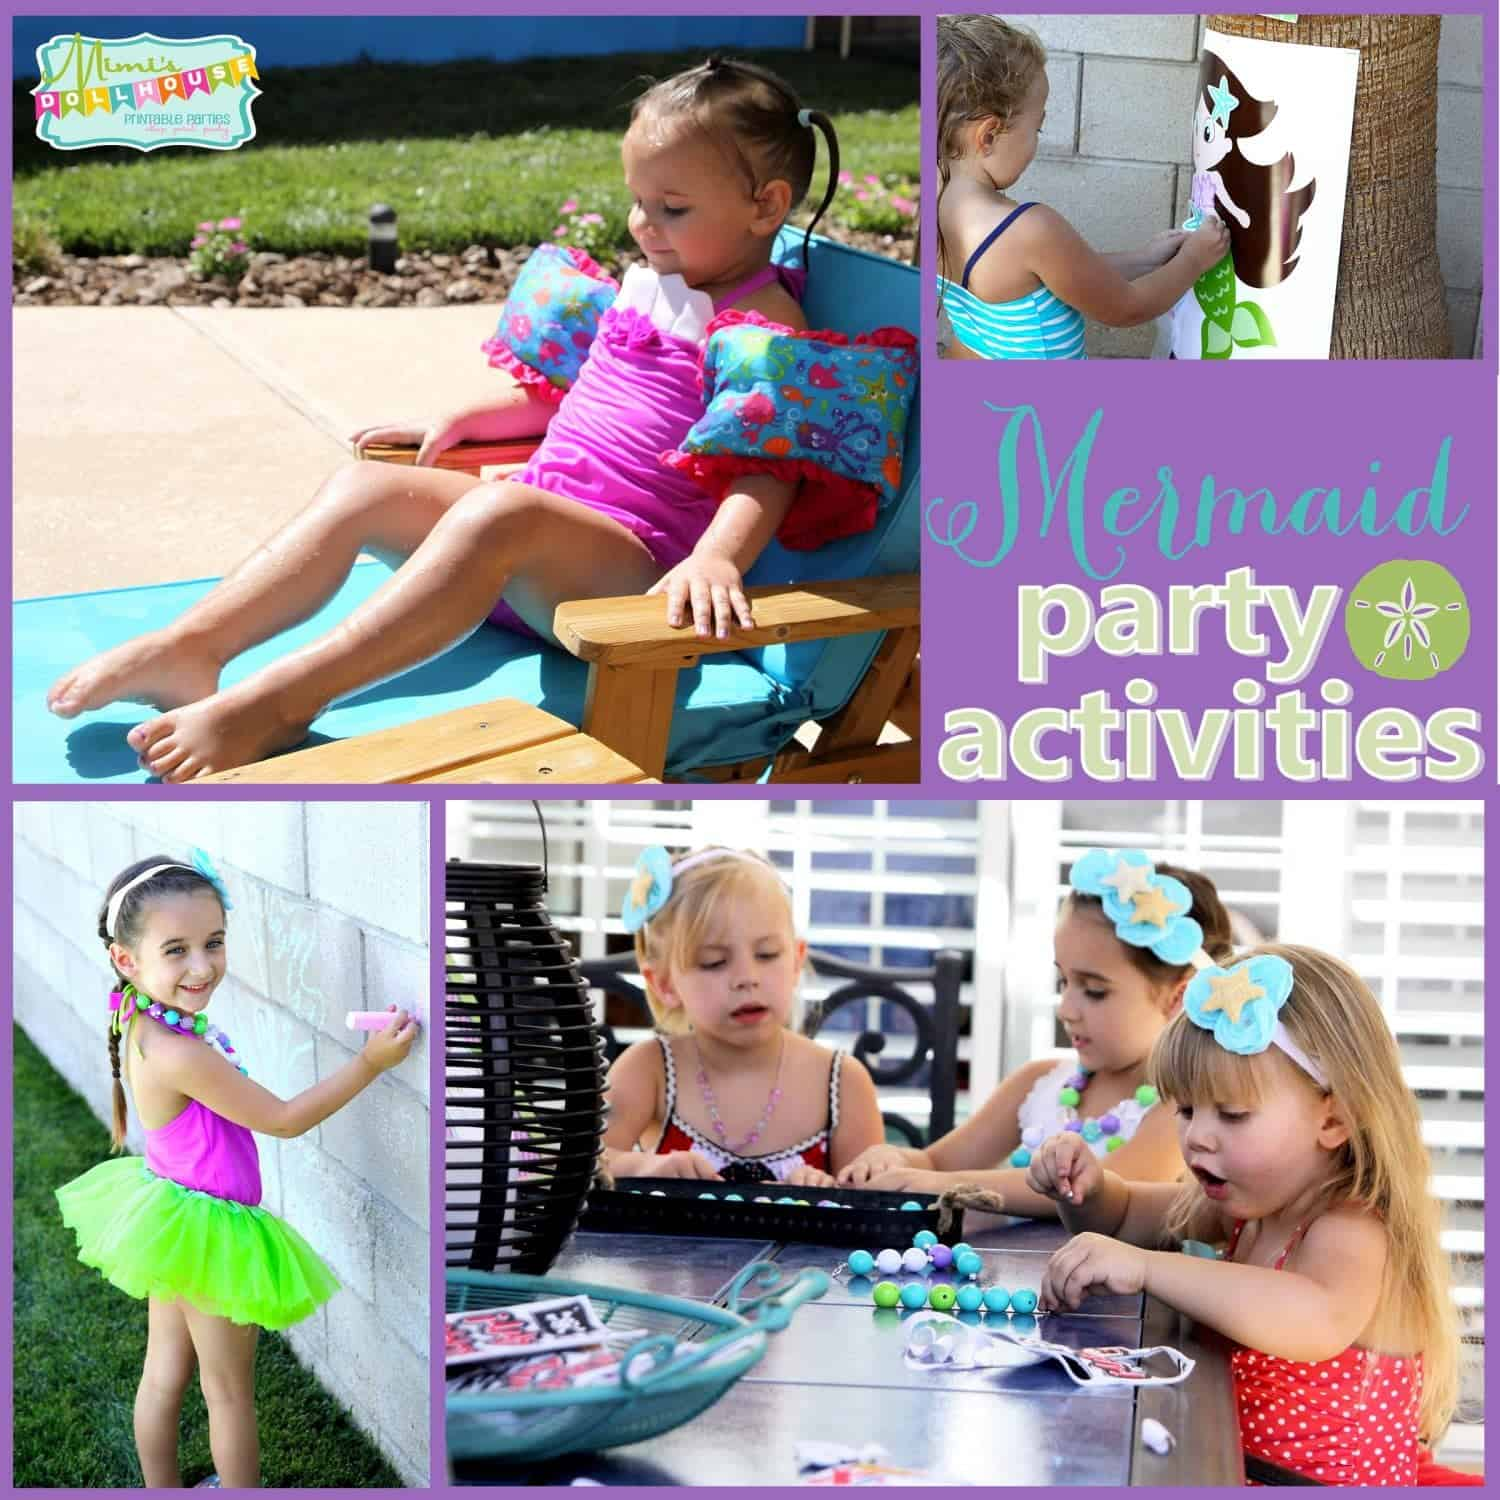 Mermaid Party: Under the Sea Mermaid Party Activities